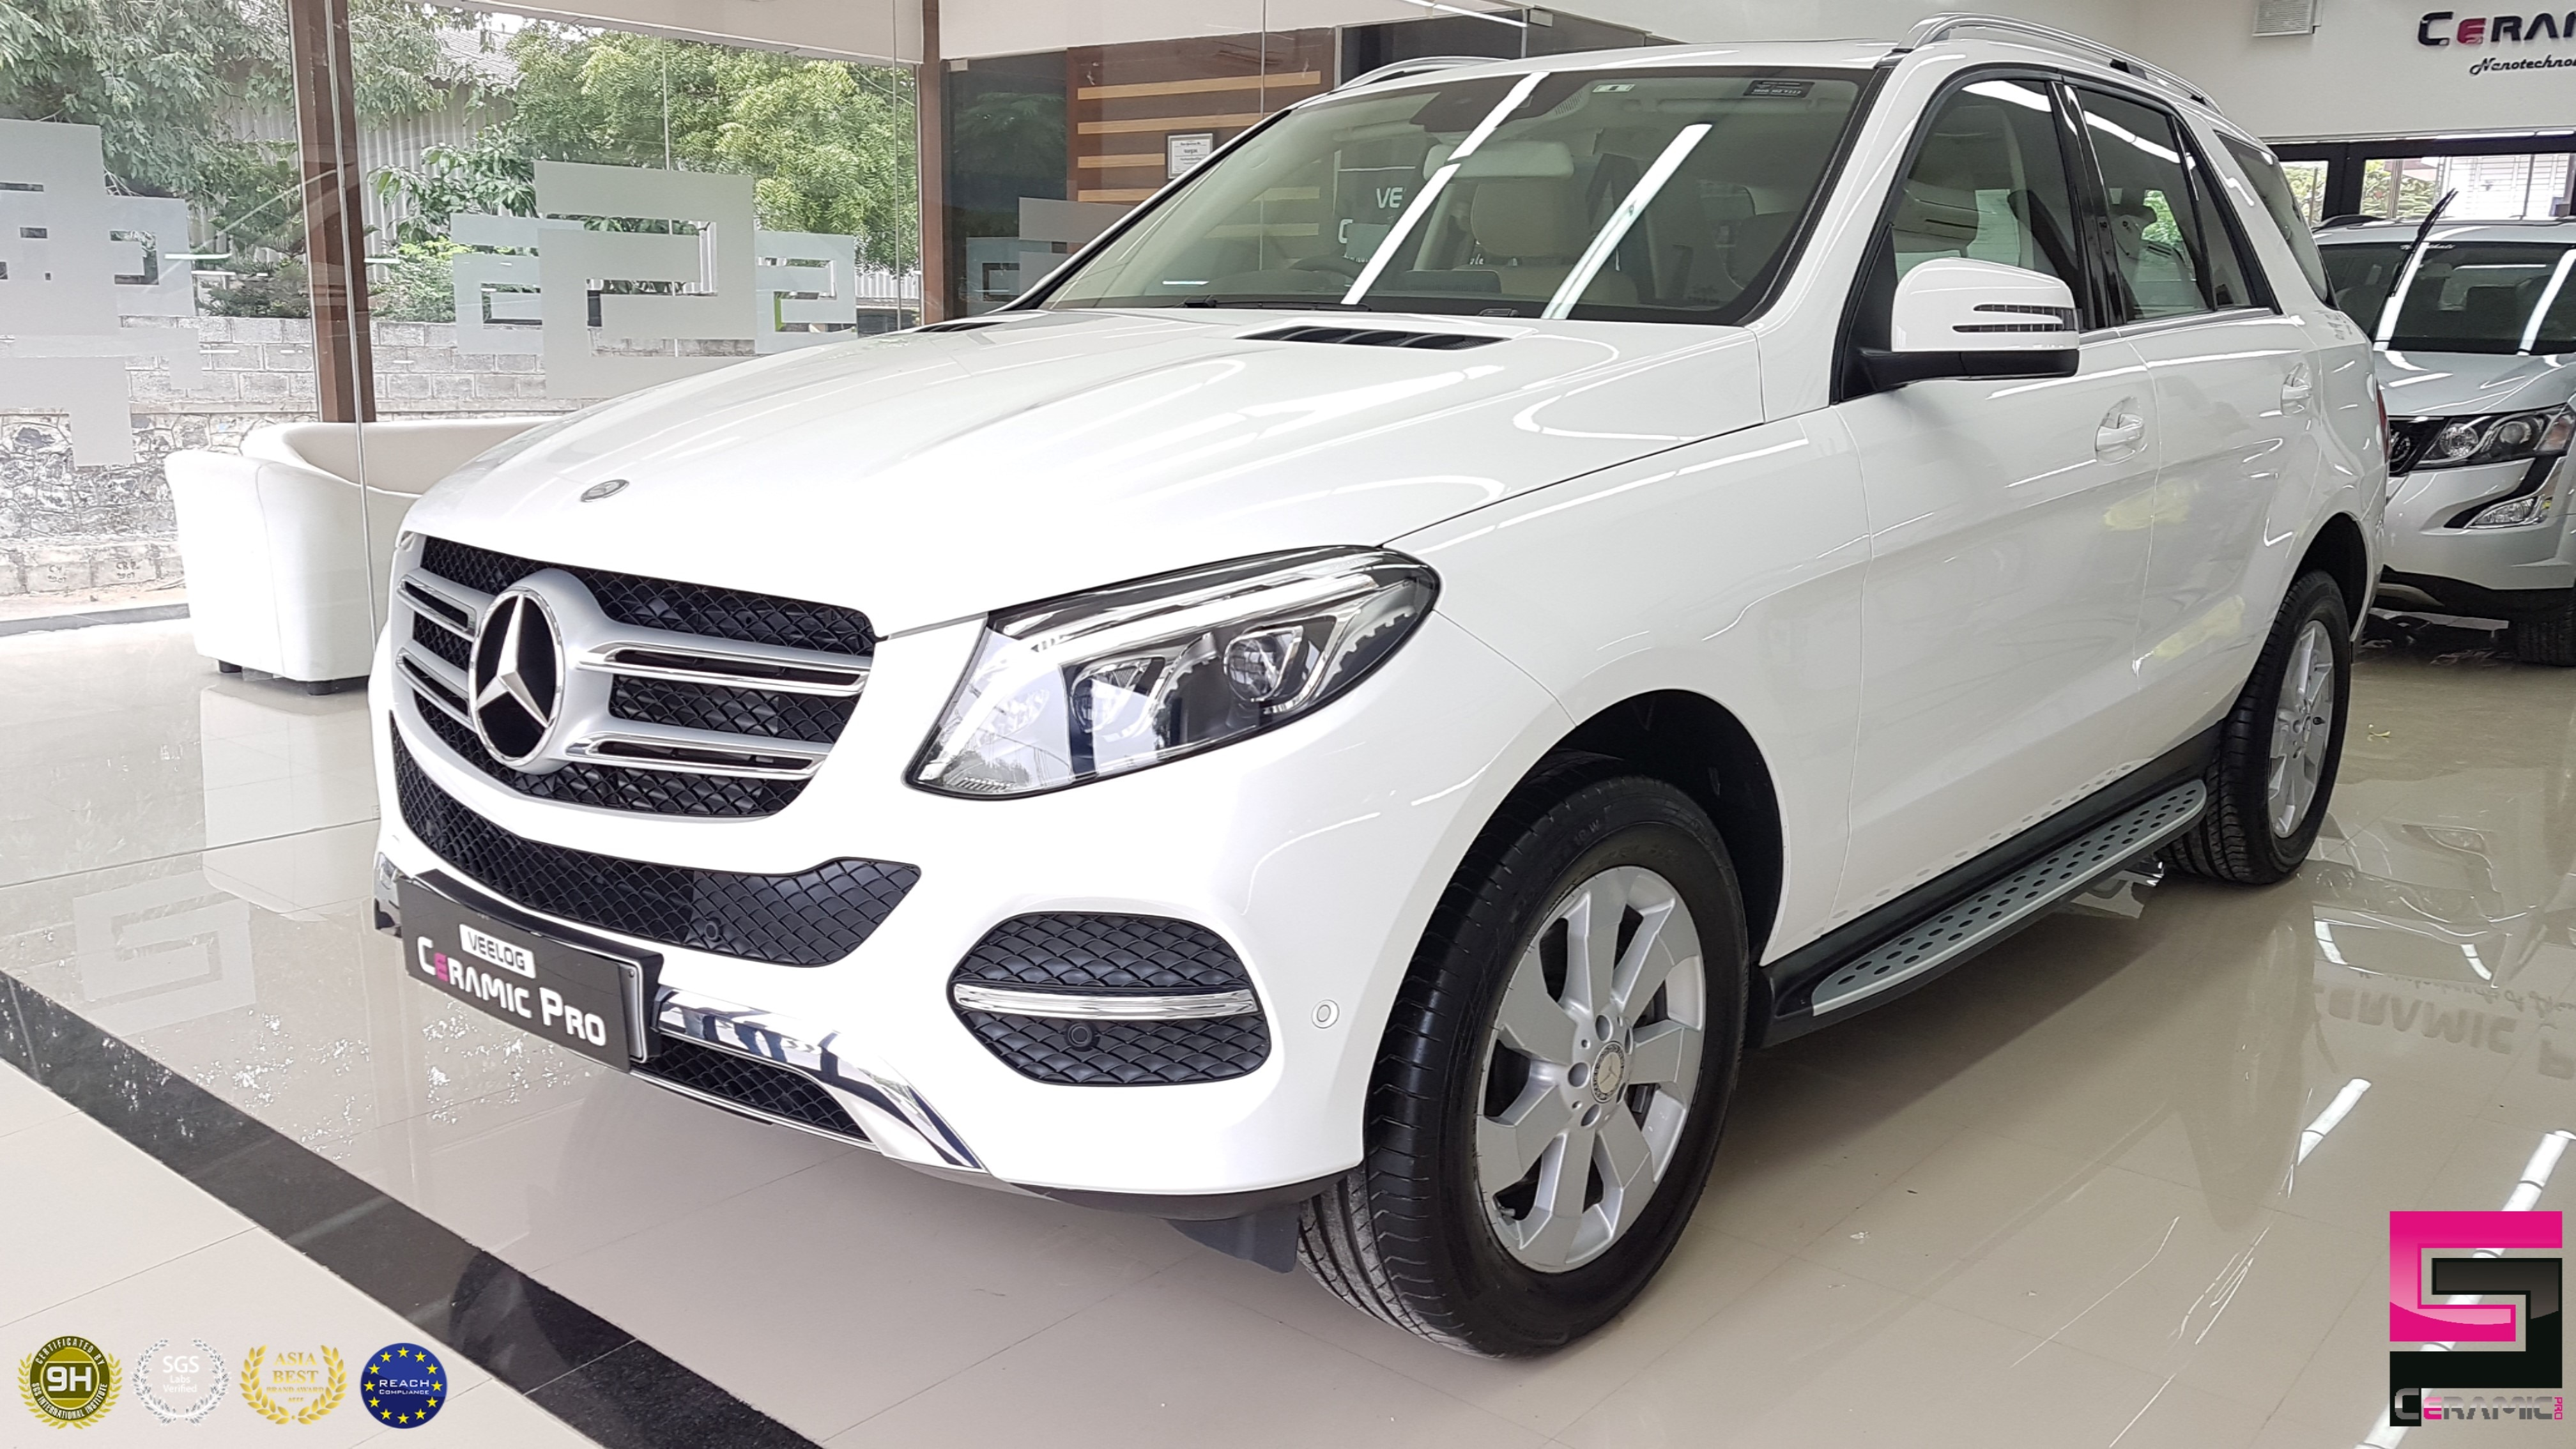 Ceramic Pro 9h Diamond Package  Mercedes GLE Premium Paint Protection With Interior Treatment Super Hydrophobic Scratch Resistant Superior Glossiness